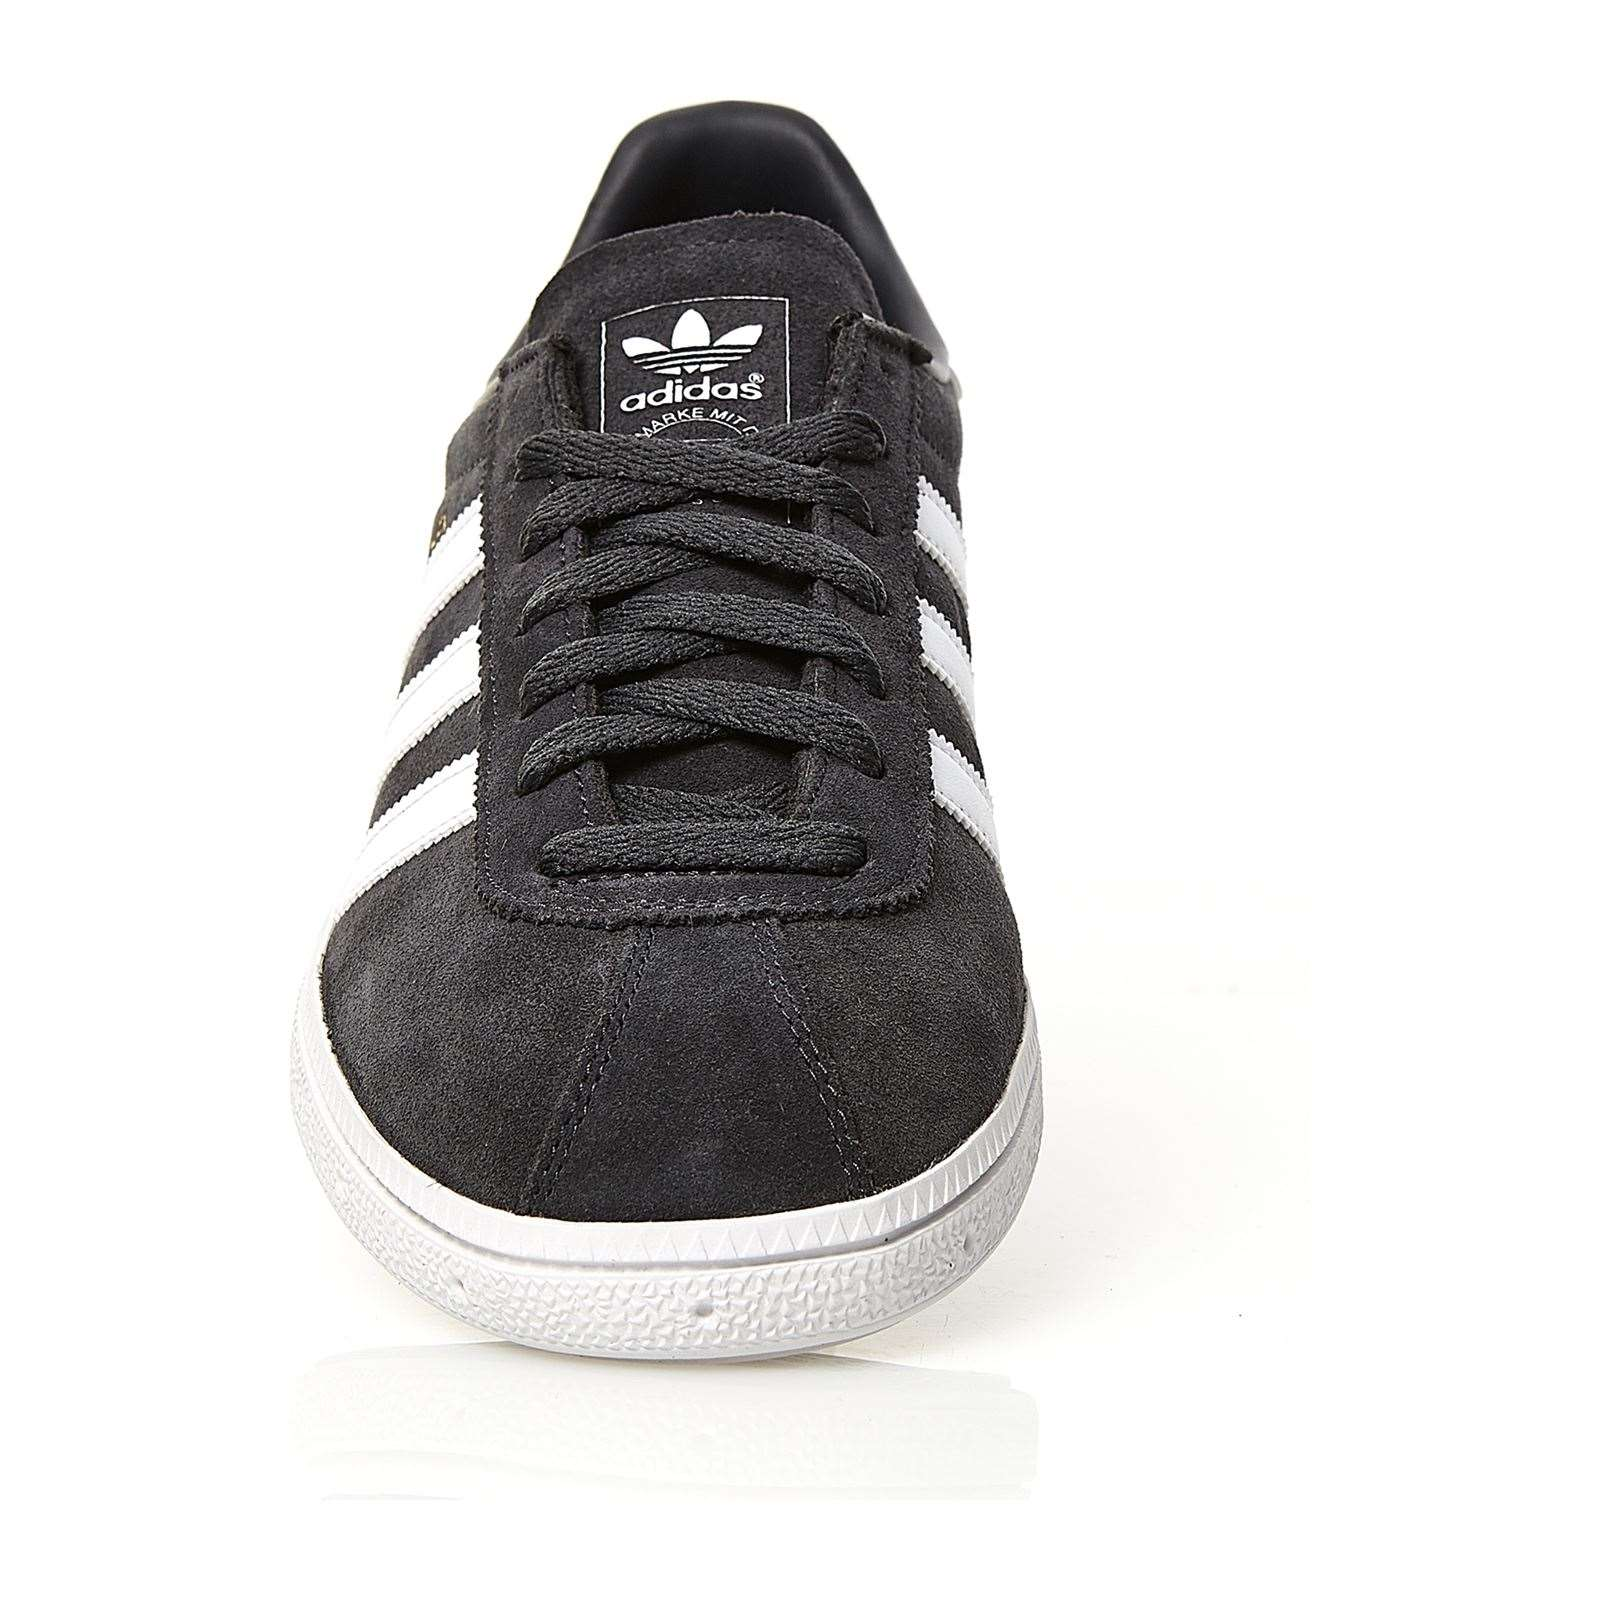 adidas Originals Originals adidas Munchen Baskets en cuir gris BrandAlley  1202a8 4add437381a0